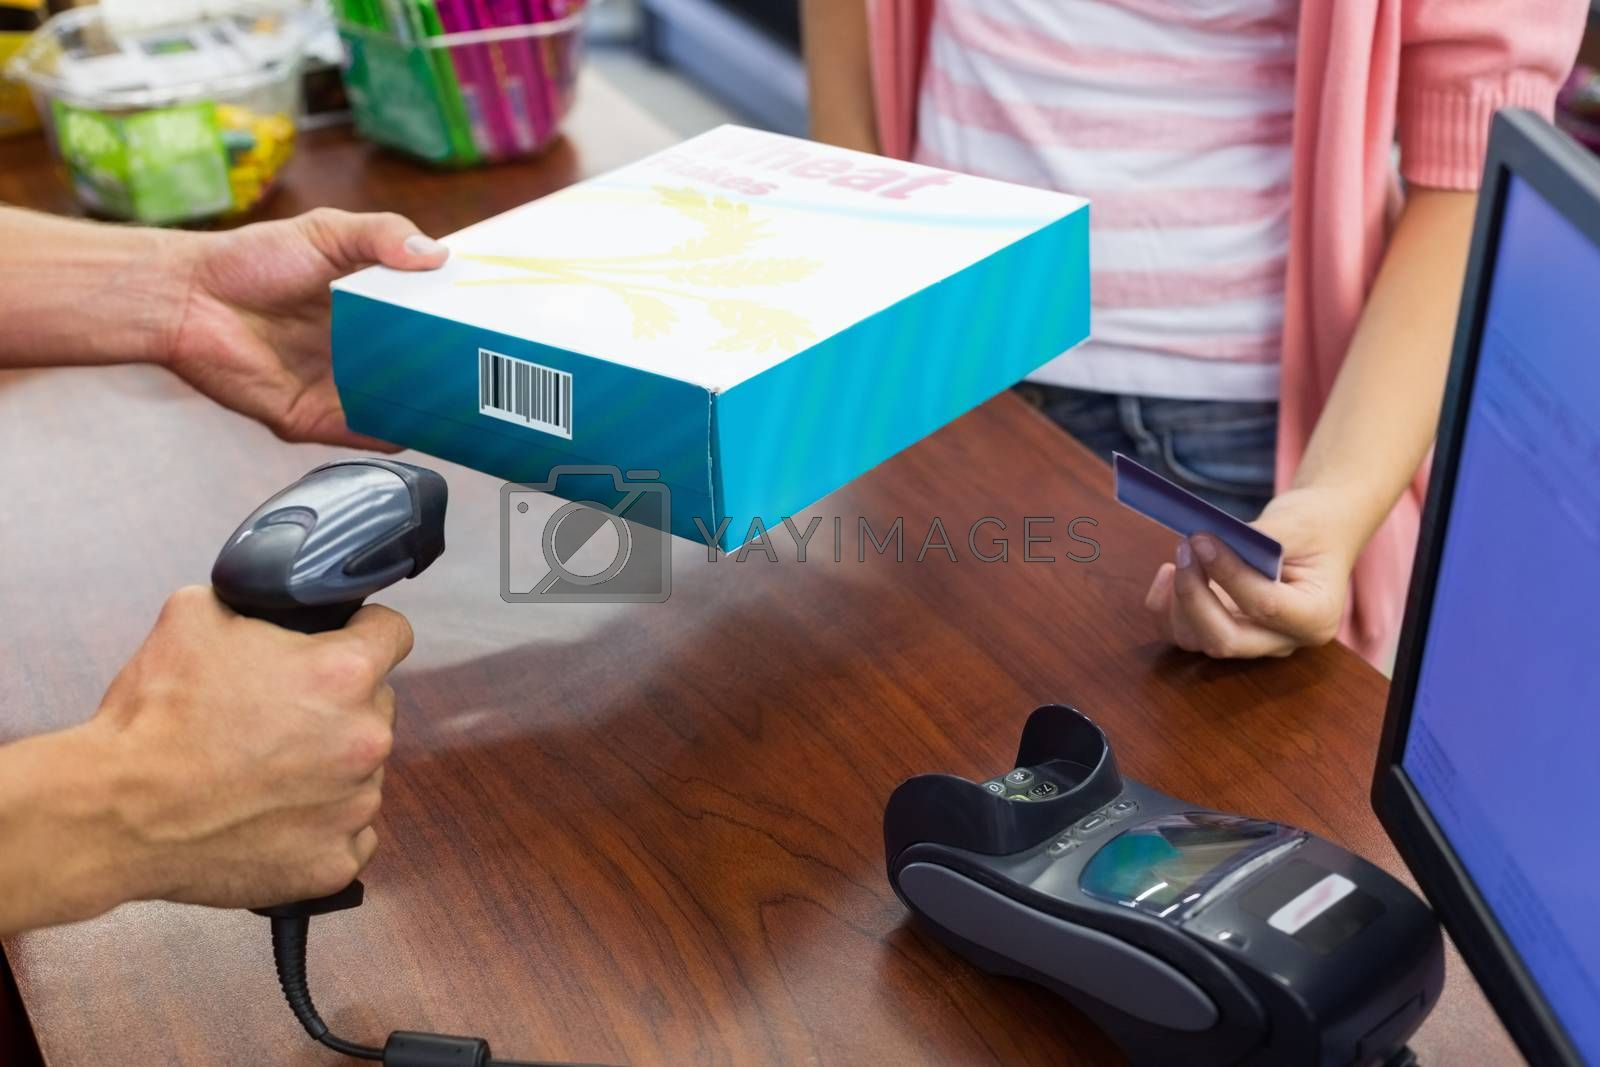 Royalty free image of Smiling woman at cash register paying with credit card and scan a product  by Wavebreakmedia